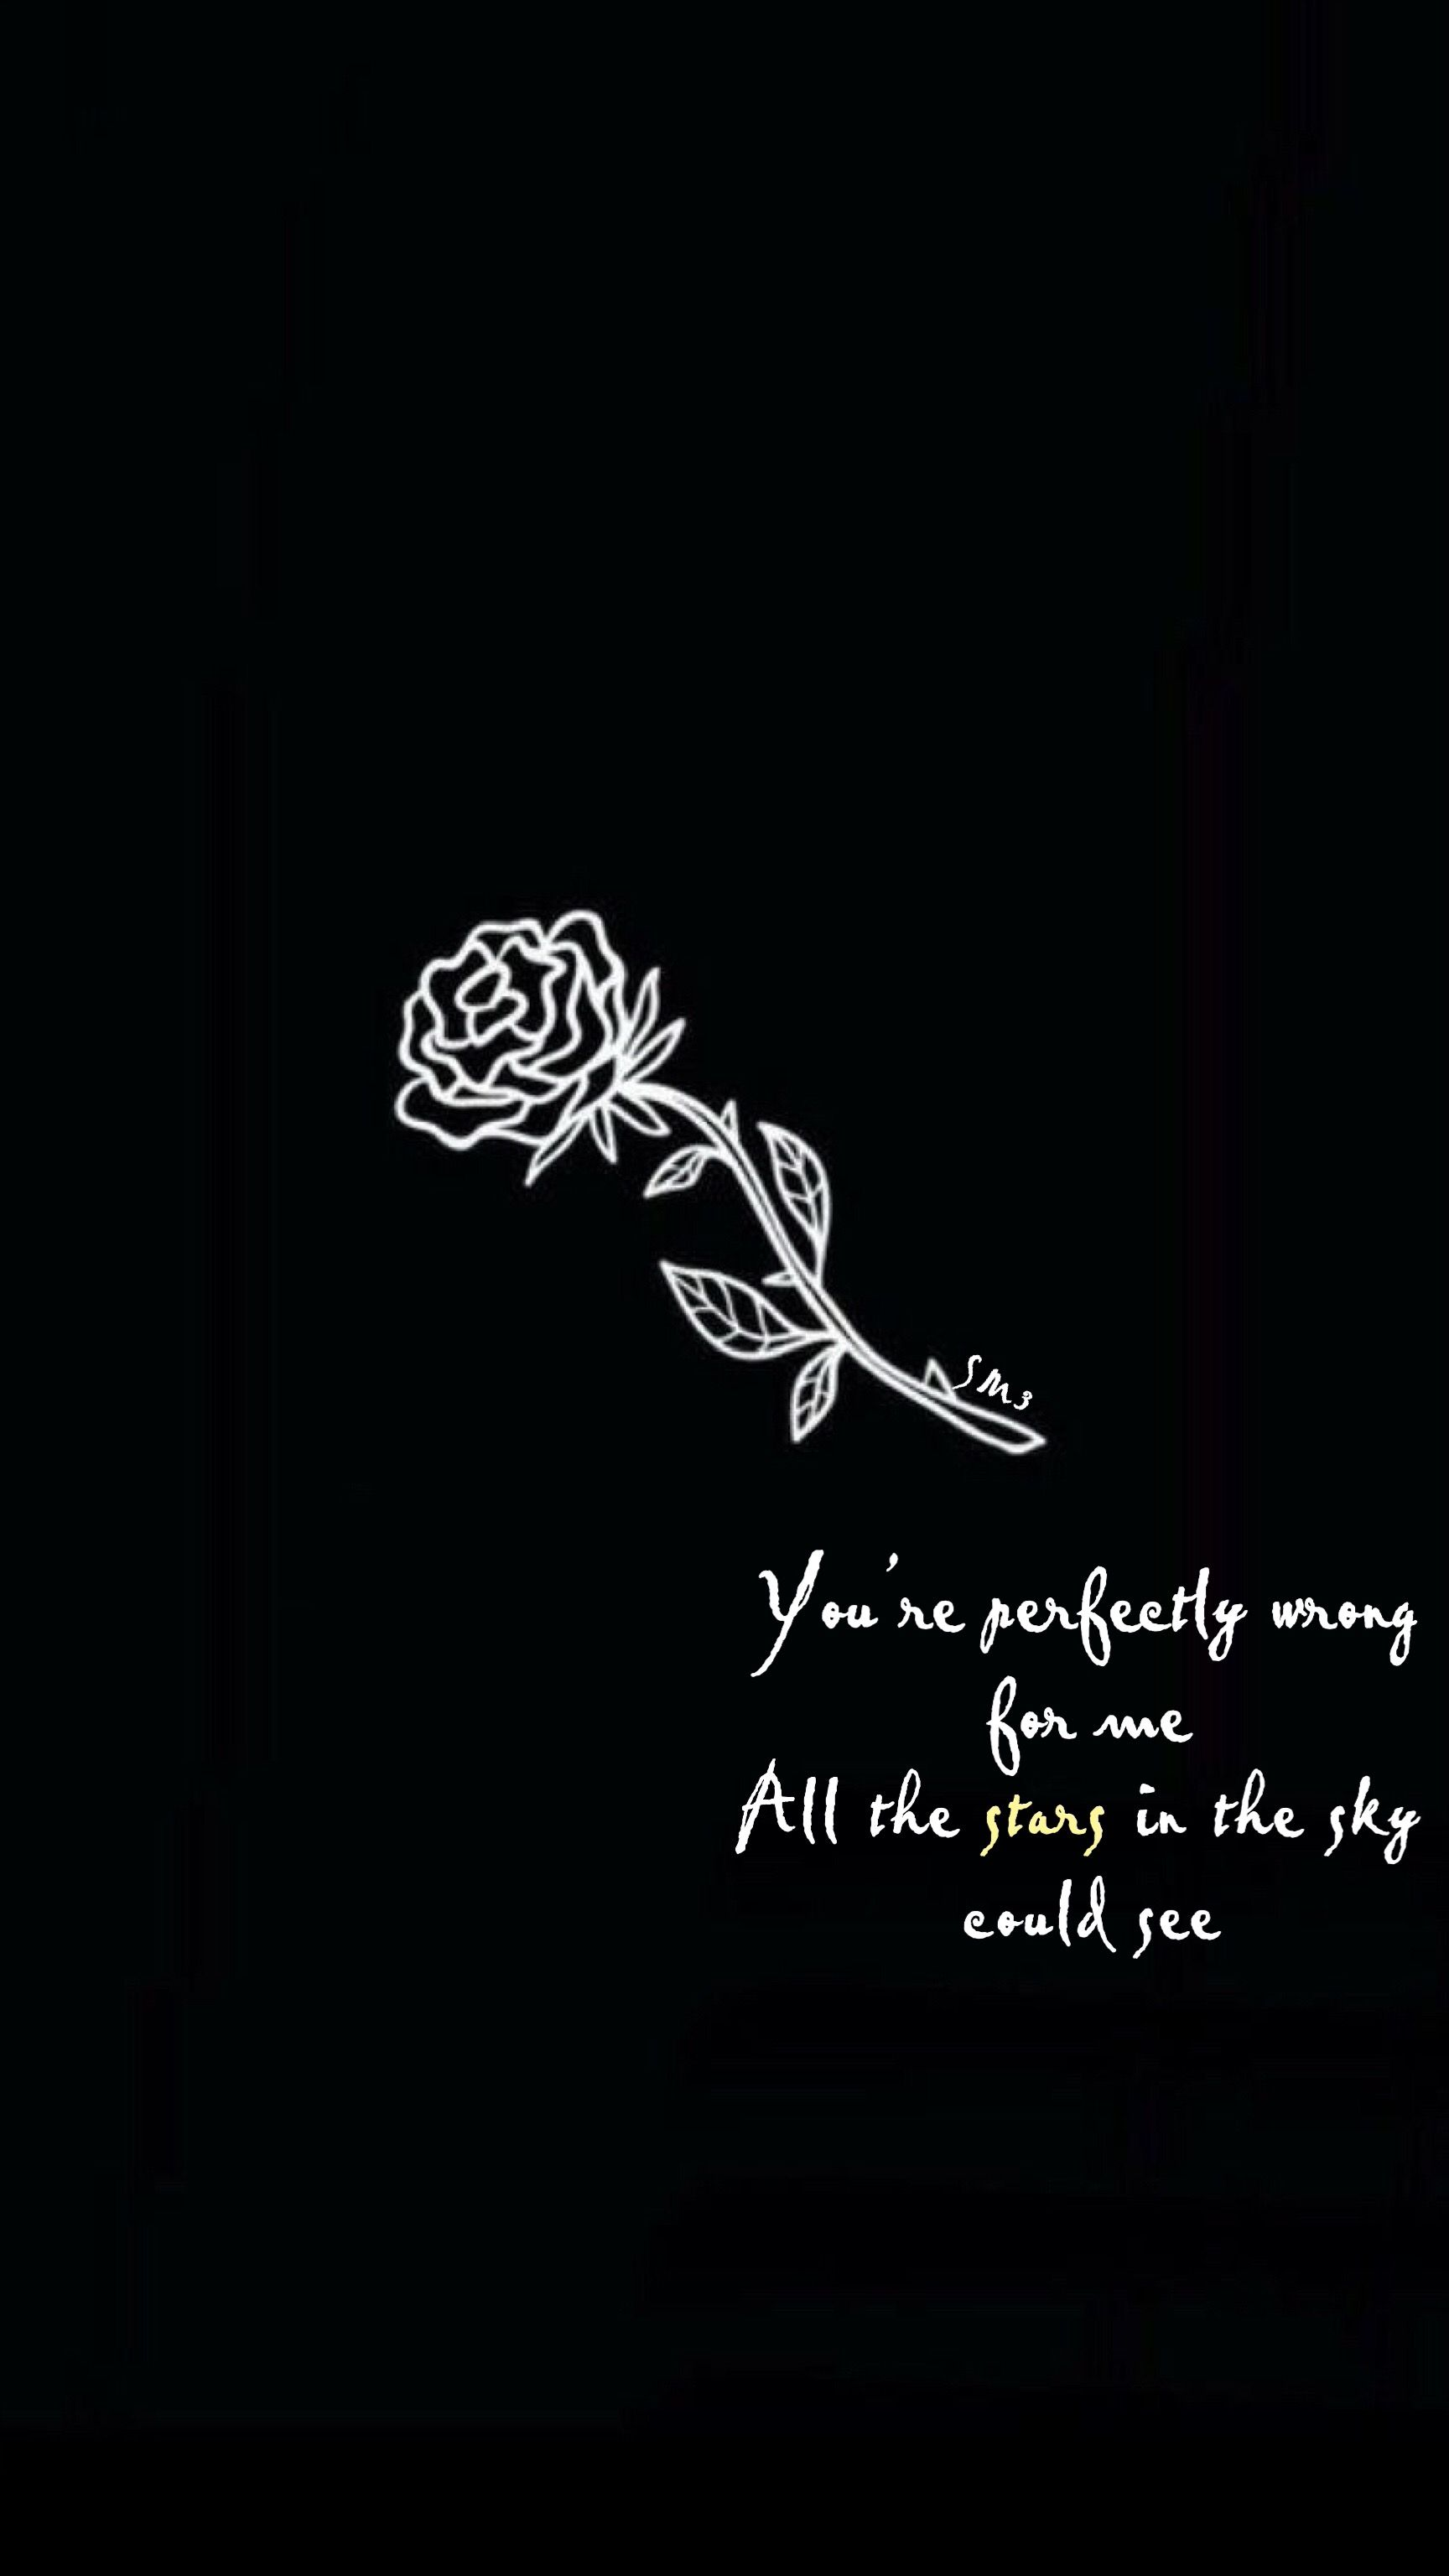 Pin By Beth On Shawn Mendes Shawn Mendes Quotes Shawn Mendes Lyrics Shawn Mendes Songs